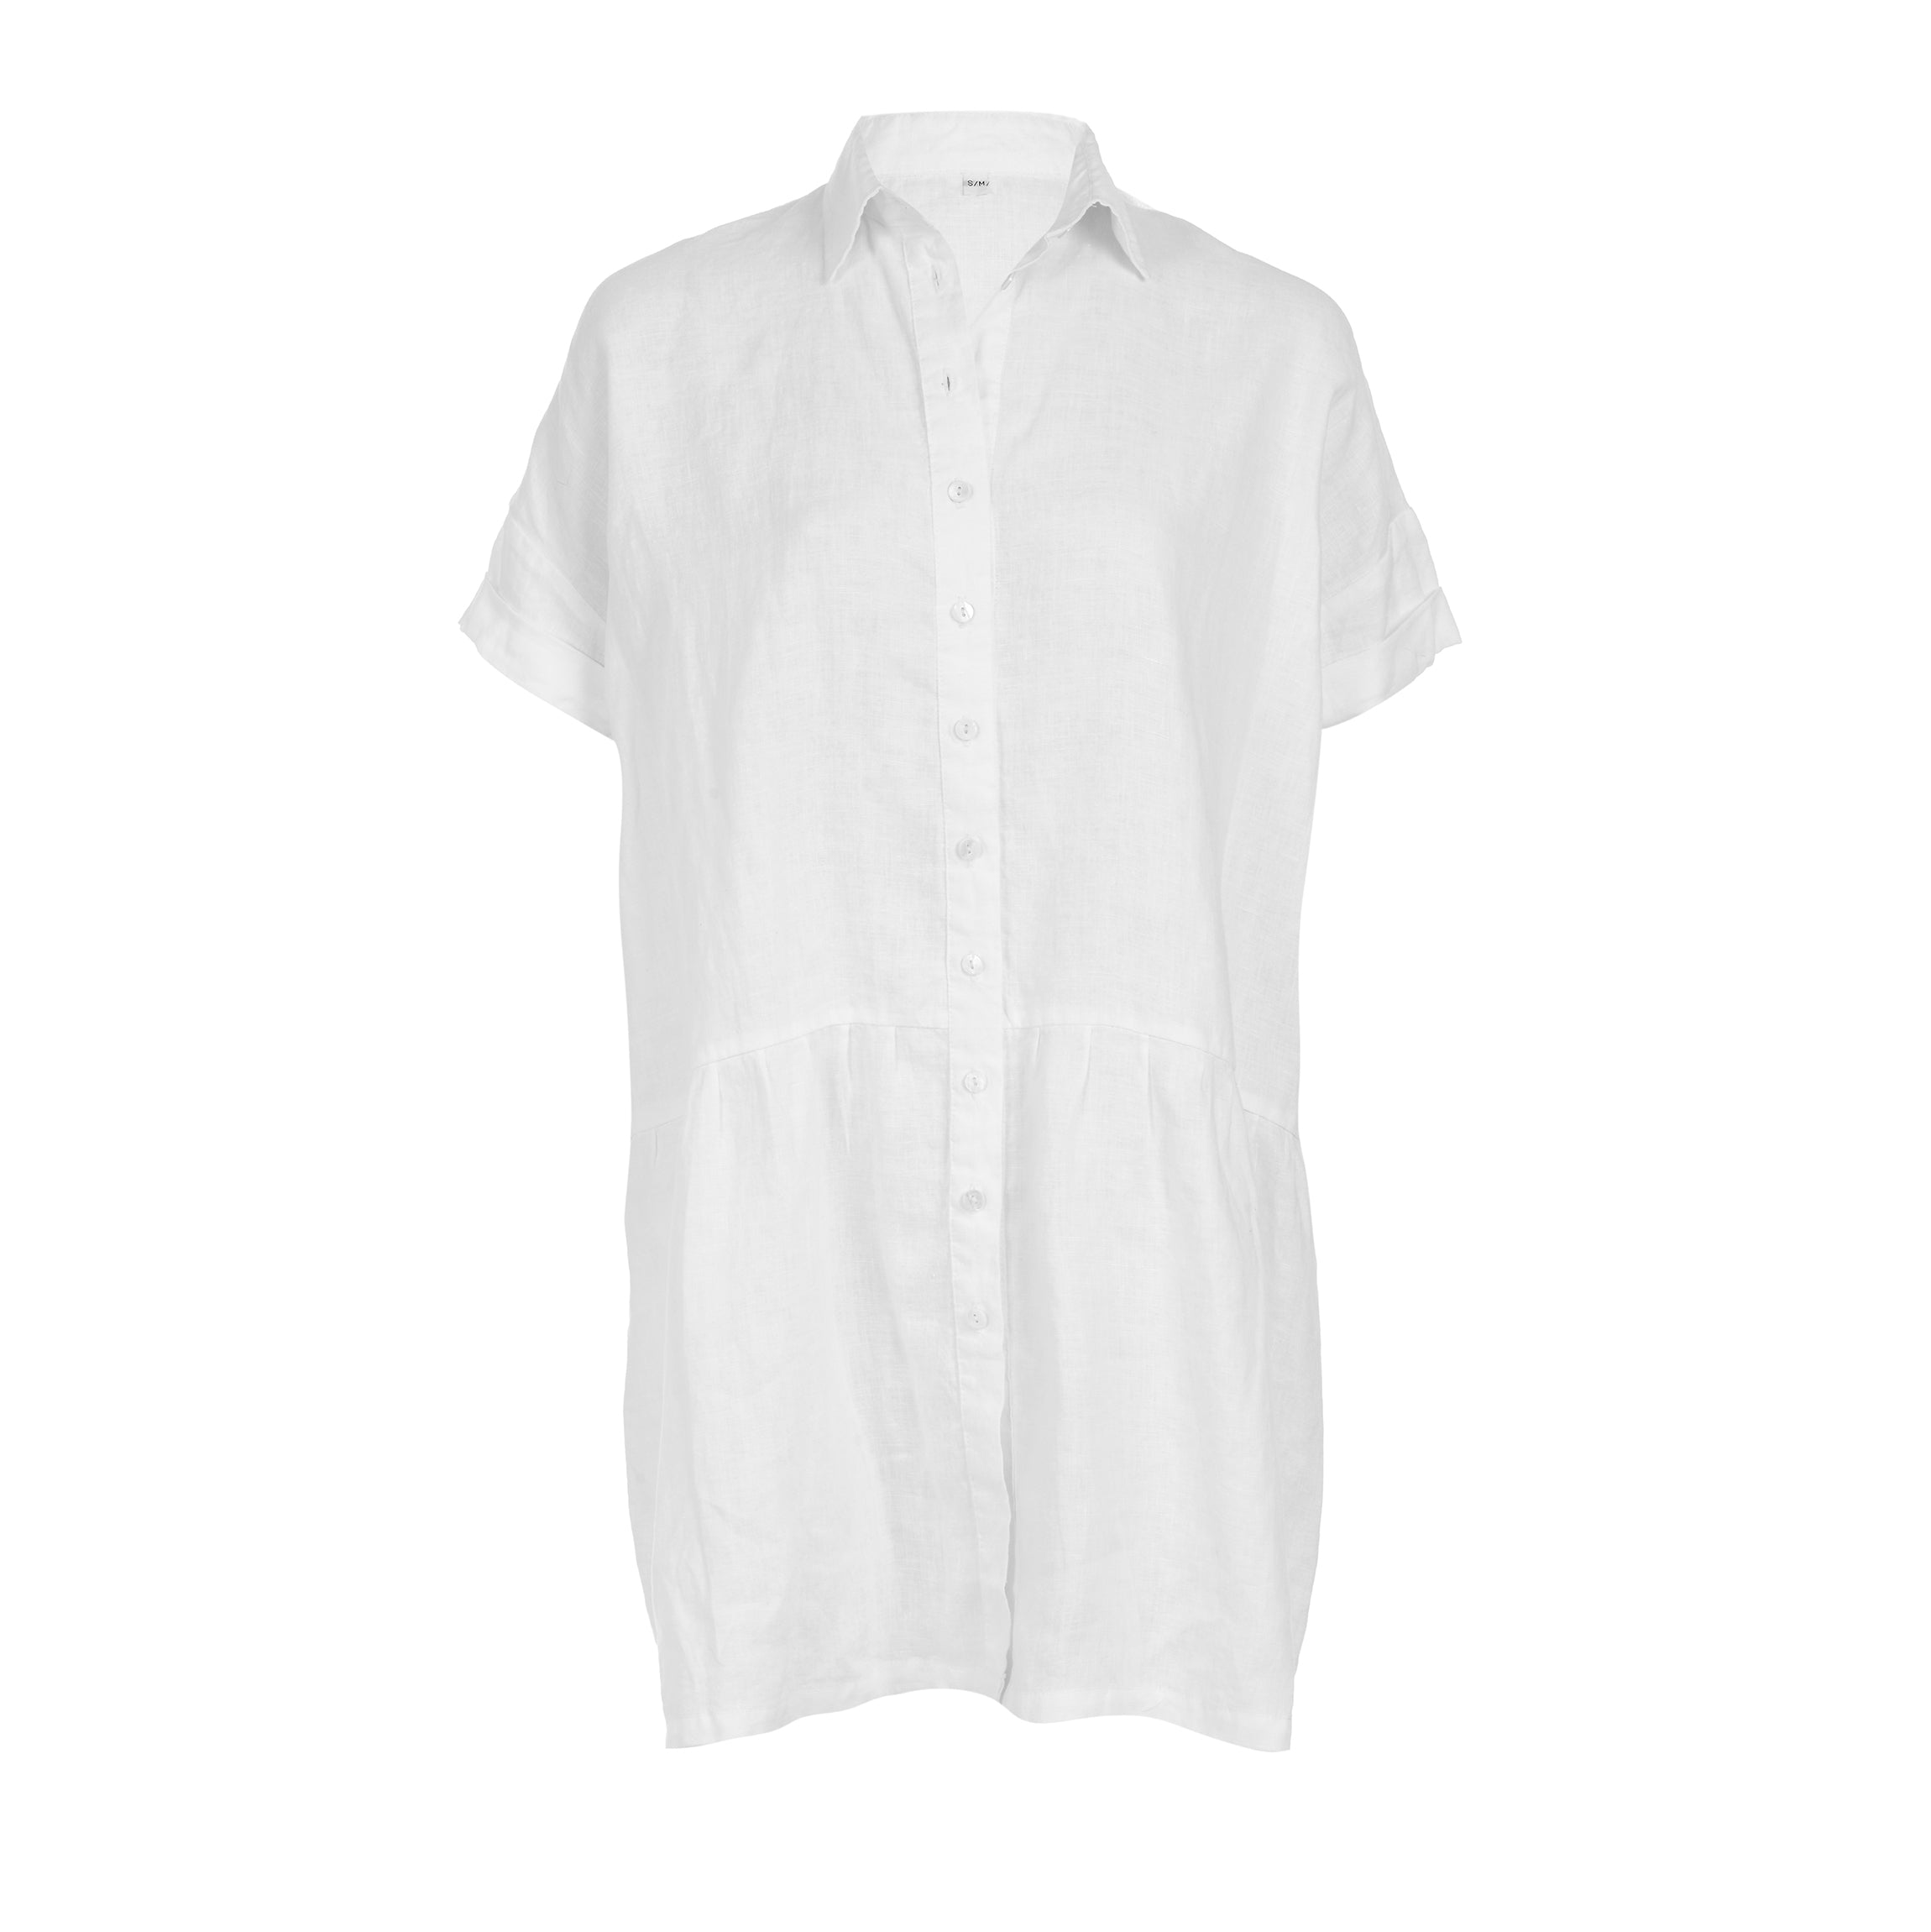 Bailey shirt dress